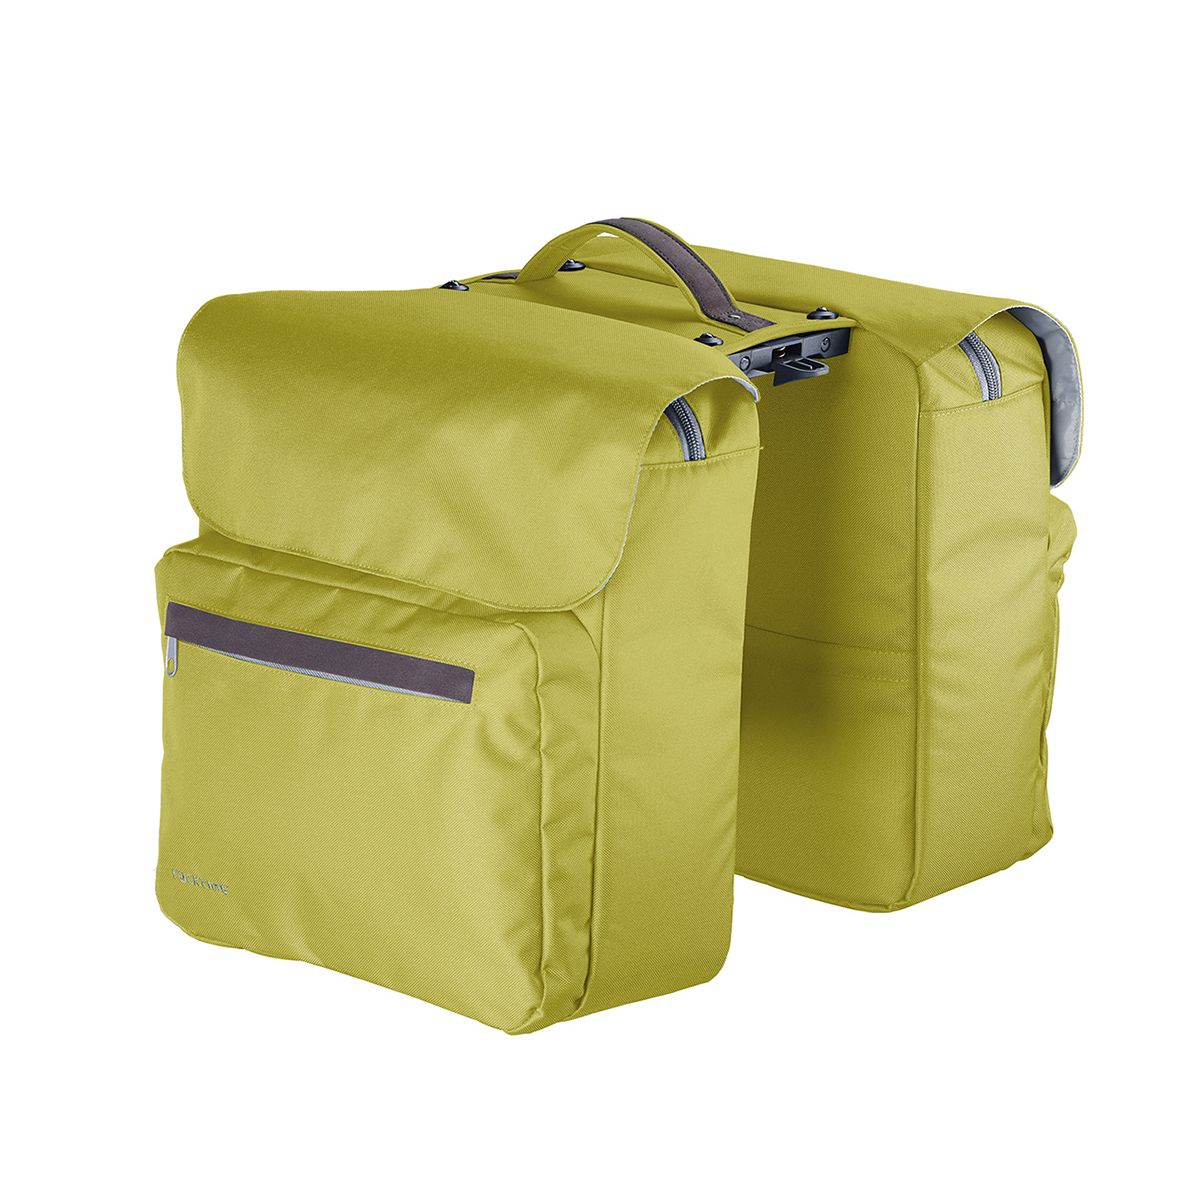 RT TURE pannier bags